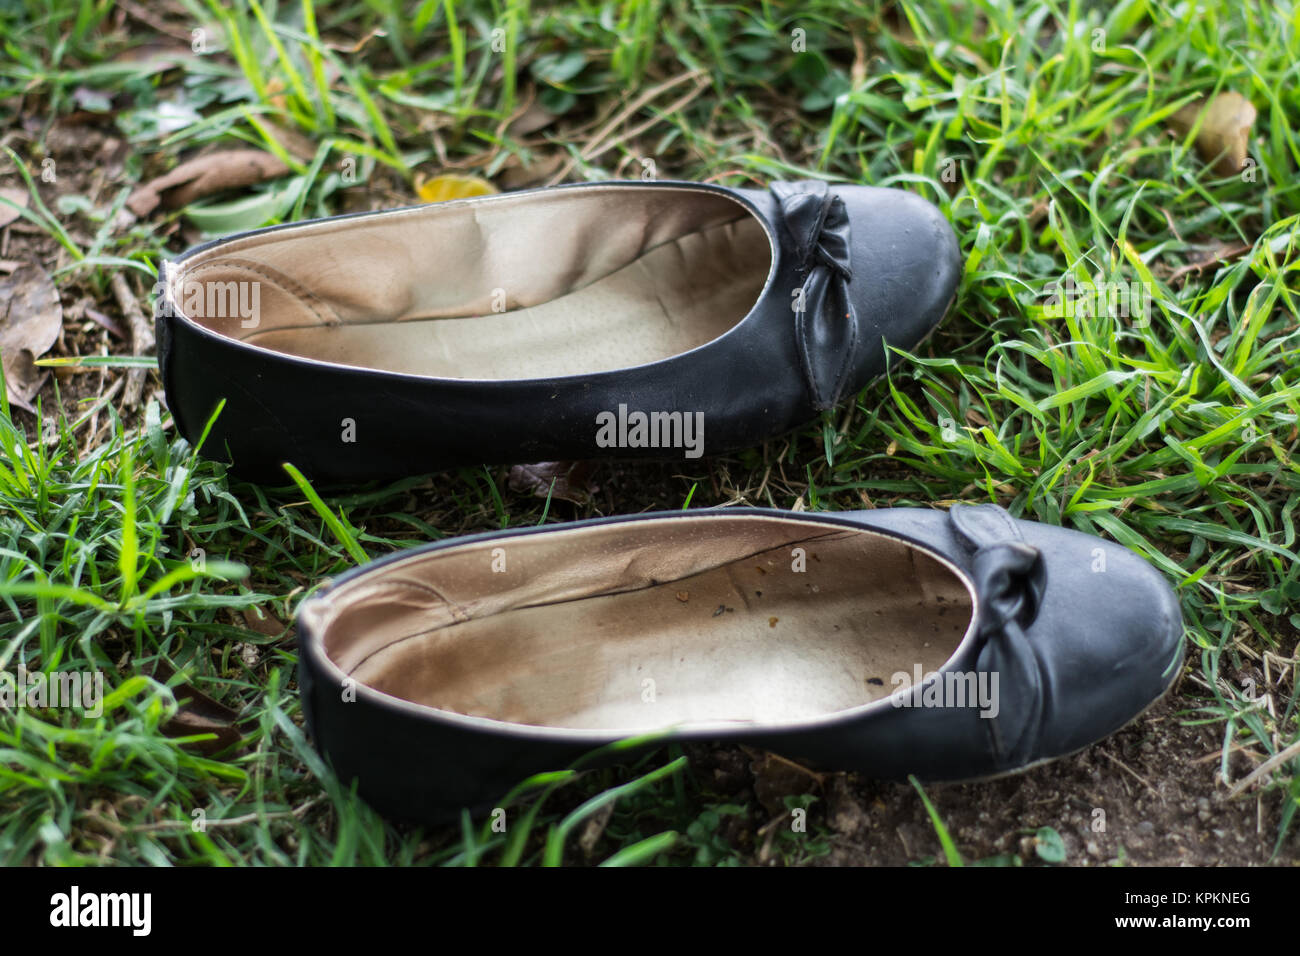 Shoes laying in the grass - Stock Image